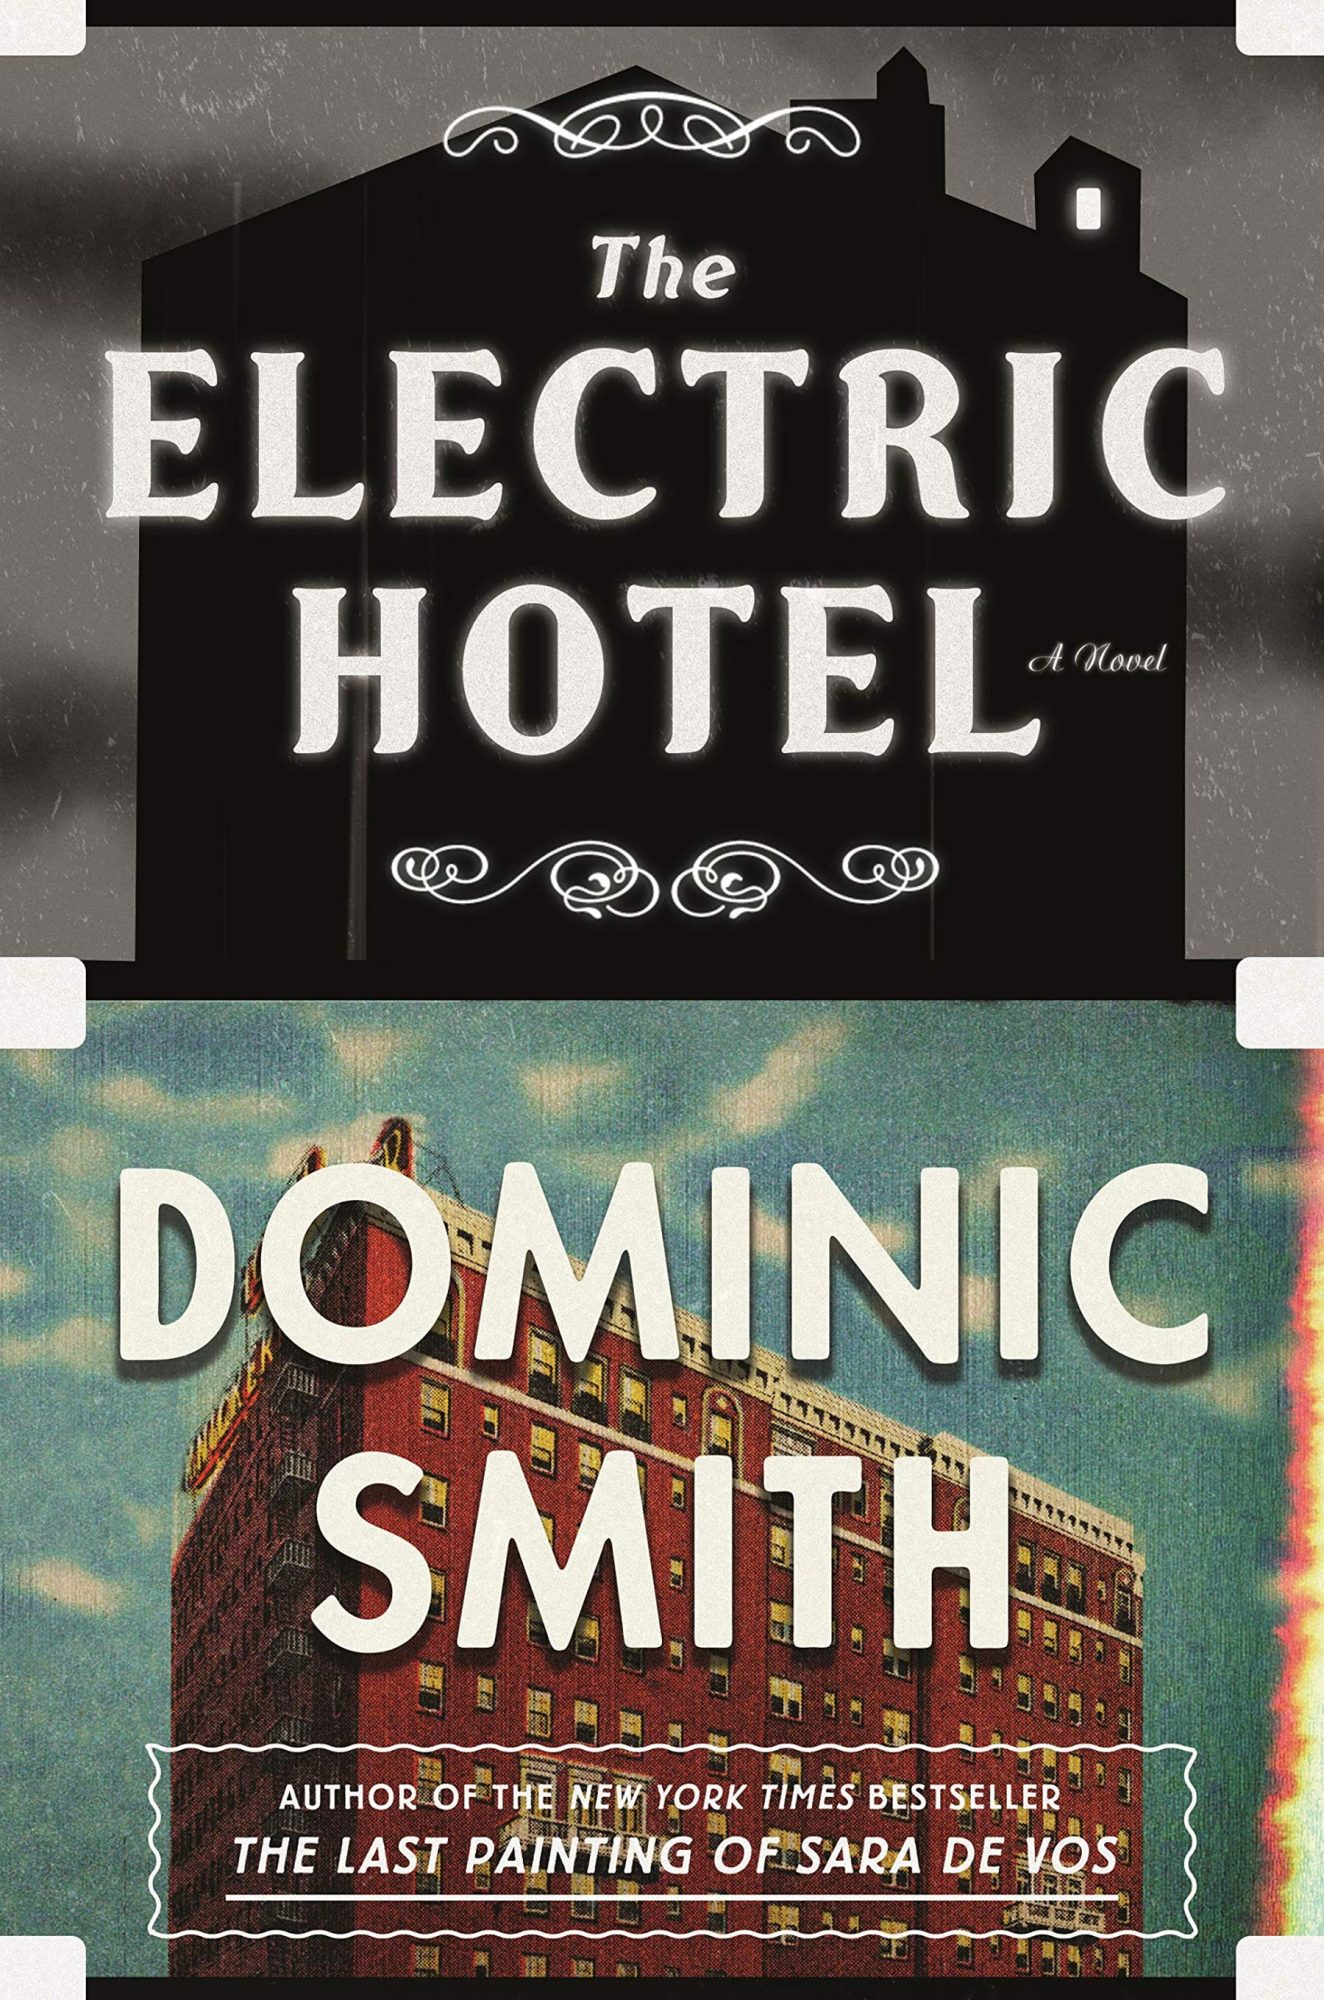 The Electric Hotel by Dominic SmithPublisher: Sarah Crichton Books